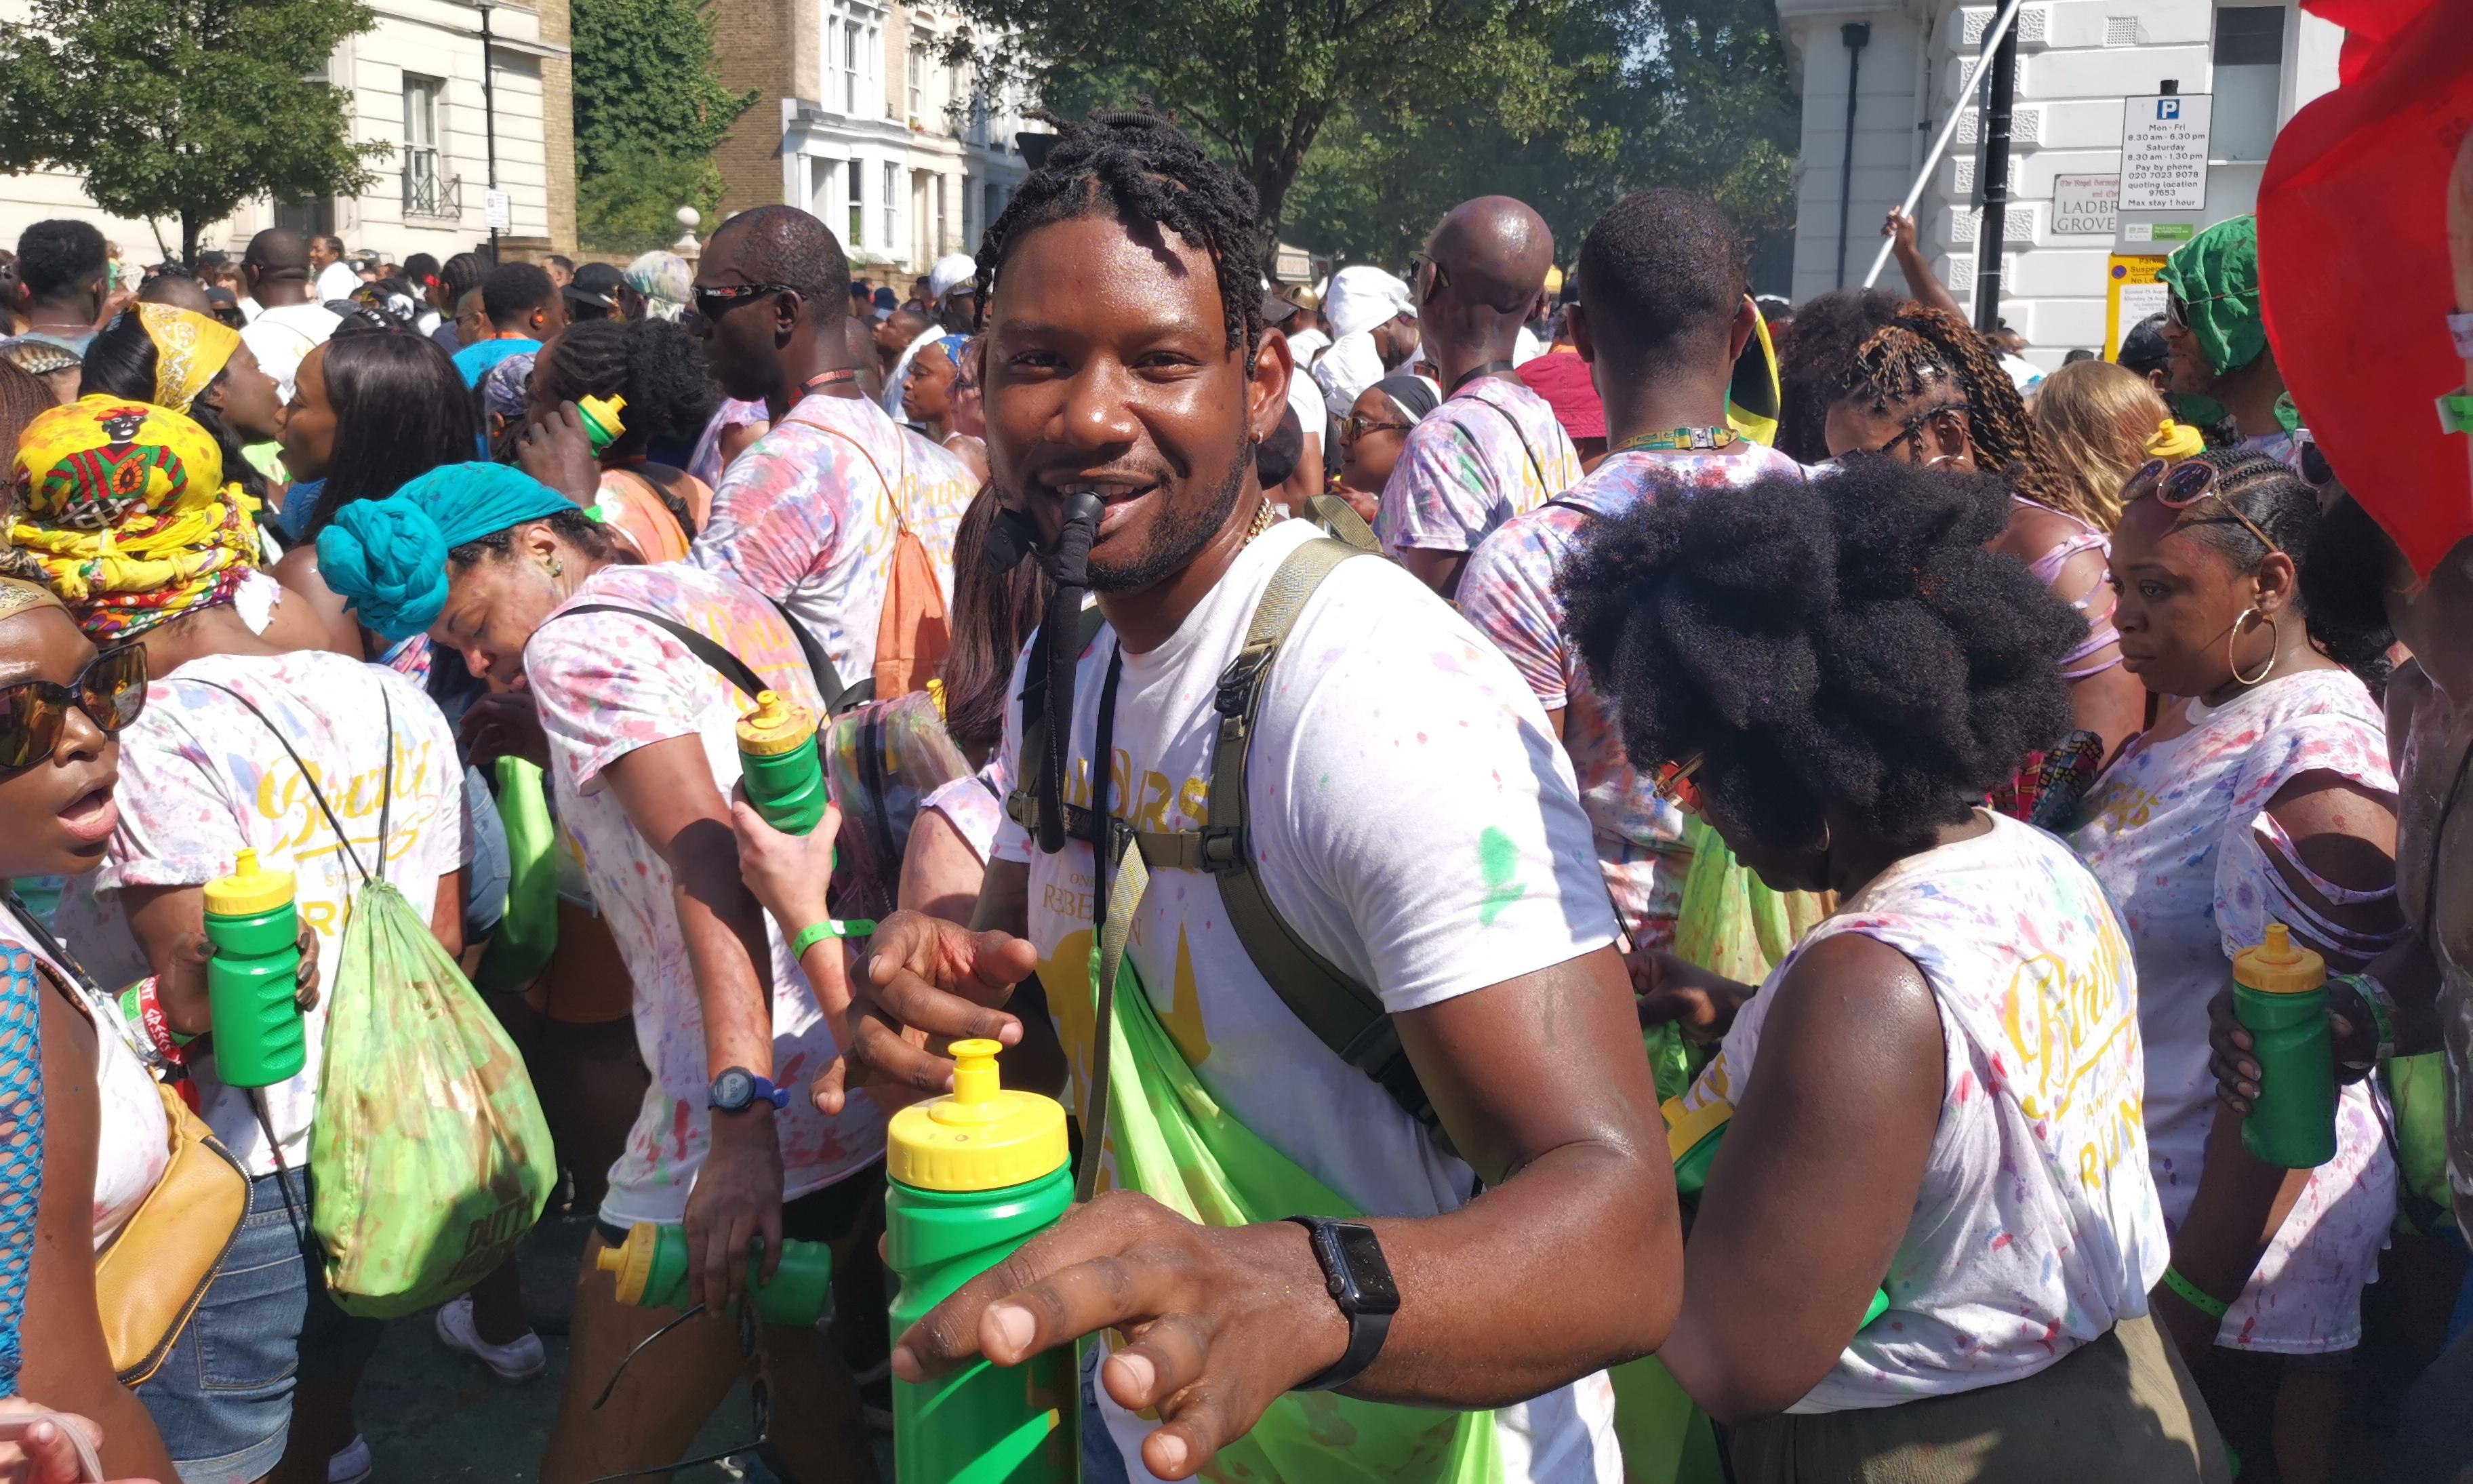 'Positive vibes all the way': partygoers revel in Notting Hill carnival